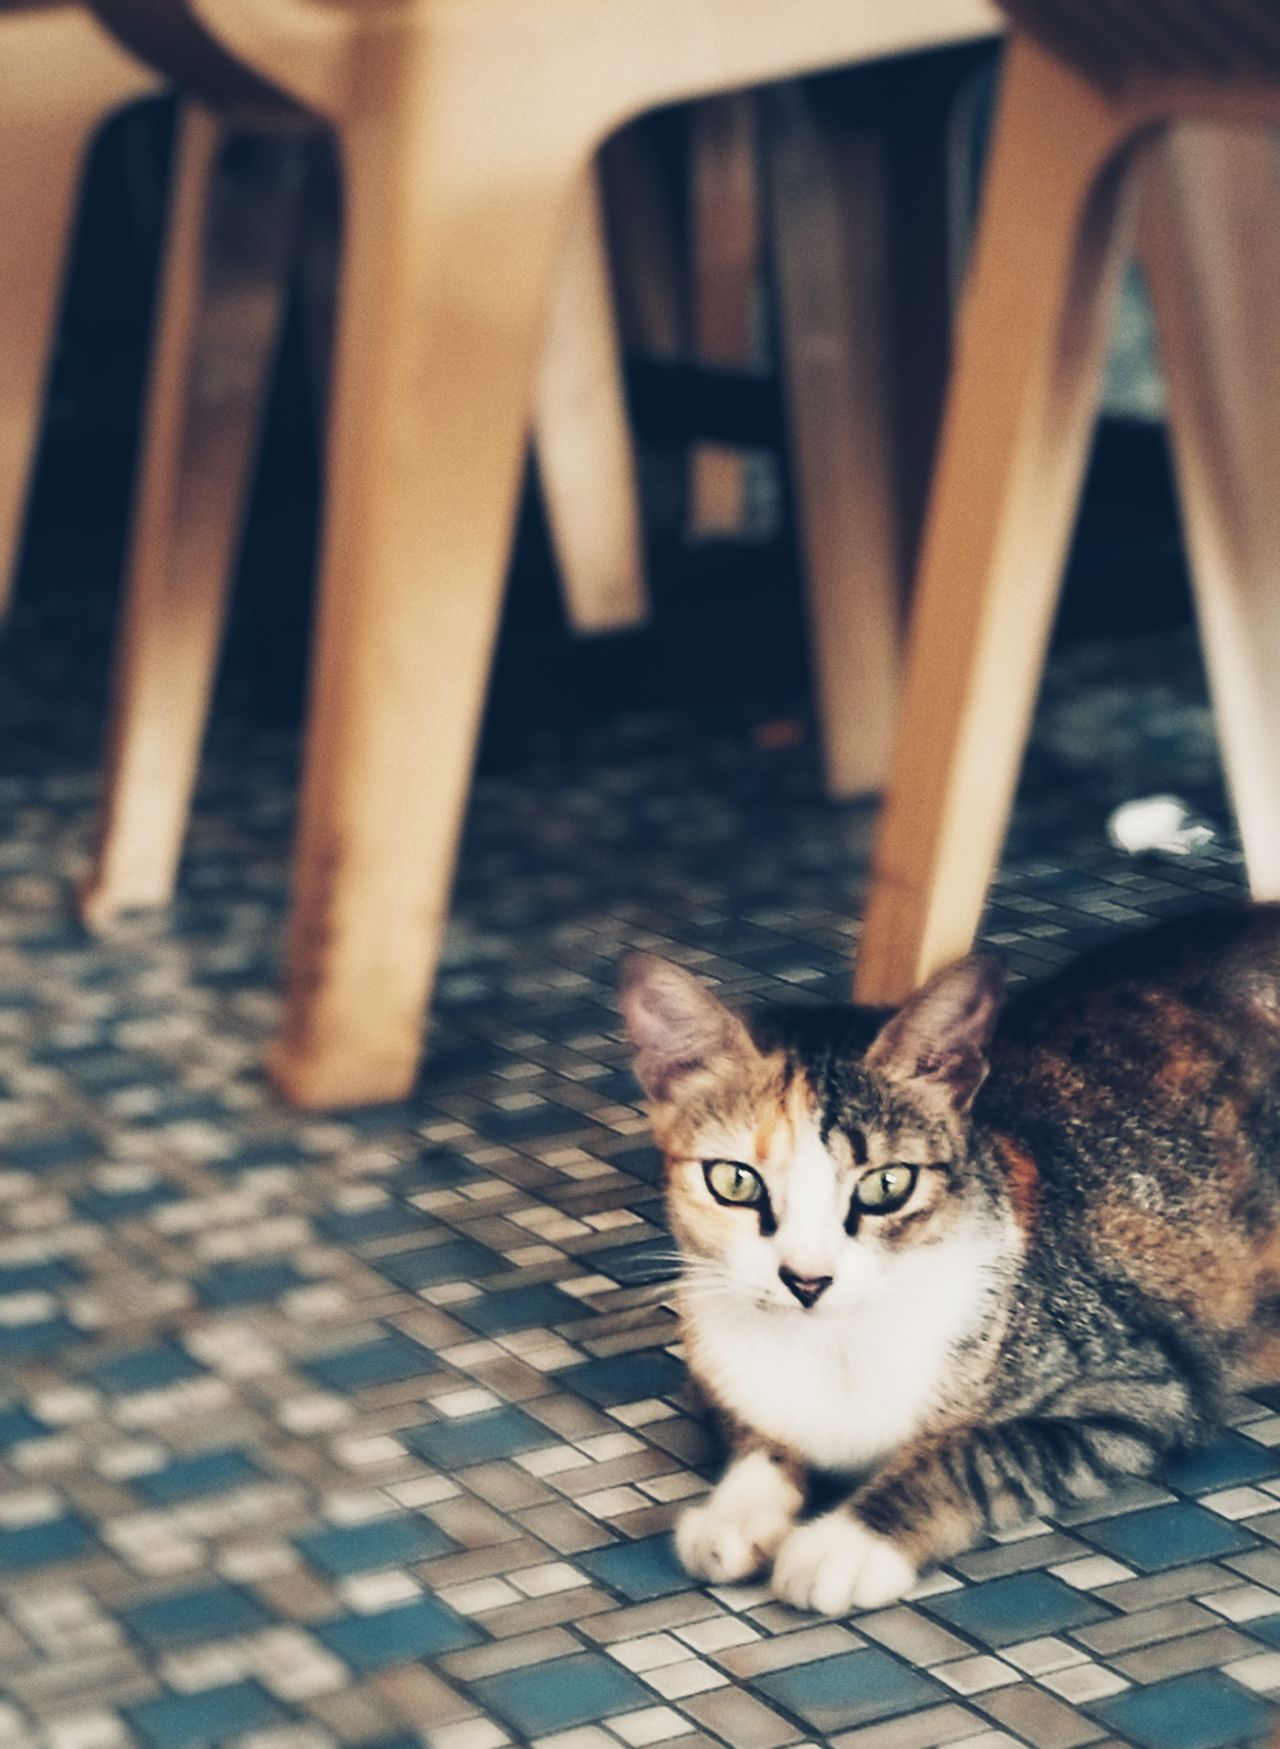 Pets Domestic Animals Domestic Cat One Animal Animal Themes Animal Indoors  Mammal Cat Huawei P9 Plus Homeless Cats Huaweiphotography Homeless HuaweiP9 Homeless Animal Homeless Cat Hua Wei P9 Plus Homelessness  Homeless Kitten